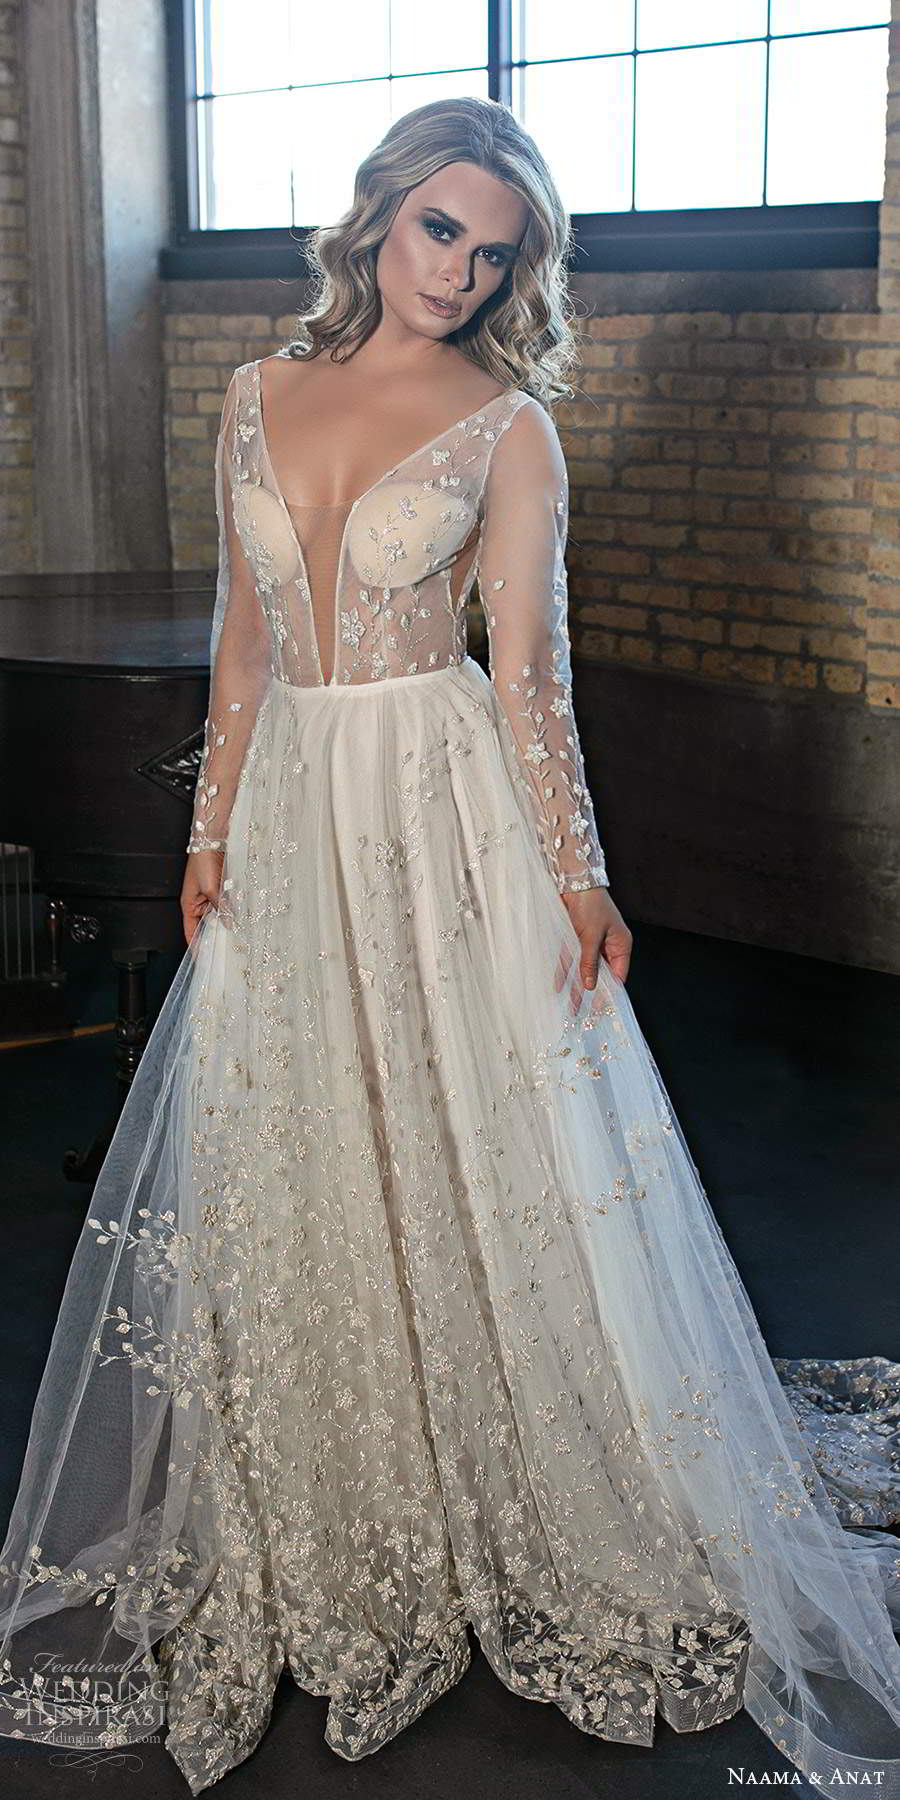 naama and anat 2020 silhouette bridal illusion long sleeves plunging v neckline heavily embellished a line ball gown wedding dress v back chapel train (4) fv